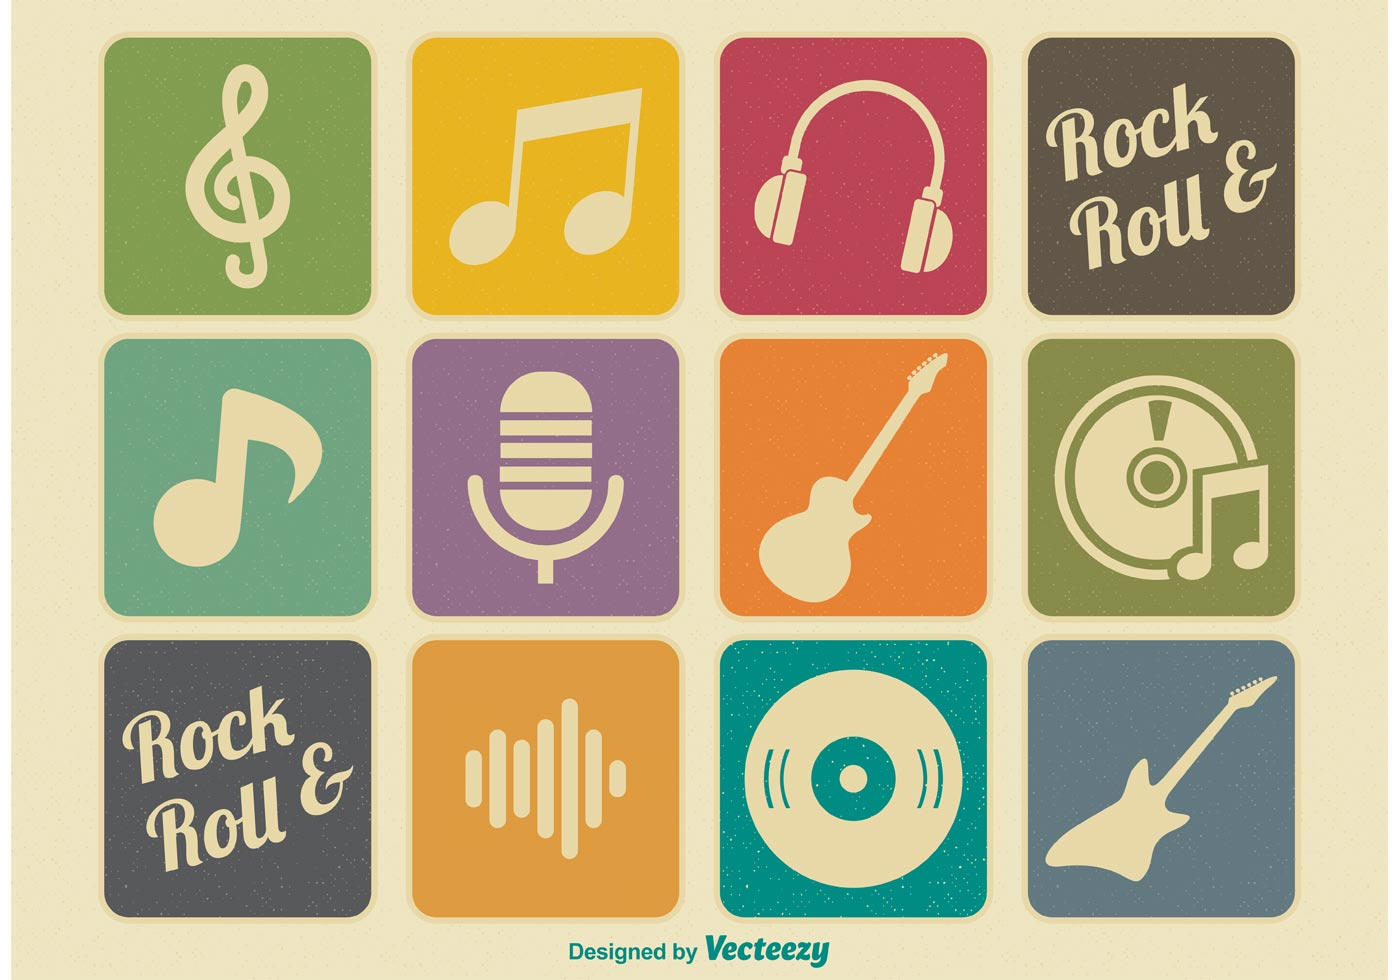 Retro Music Icons - Download Free Vector Art, Stock ... | 1400 x 980 jpeg 130kB